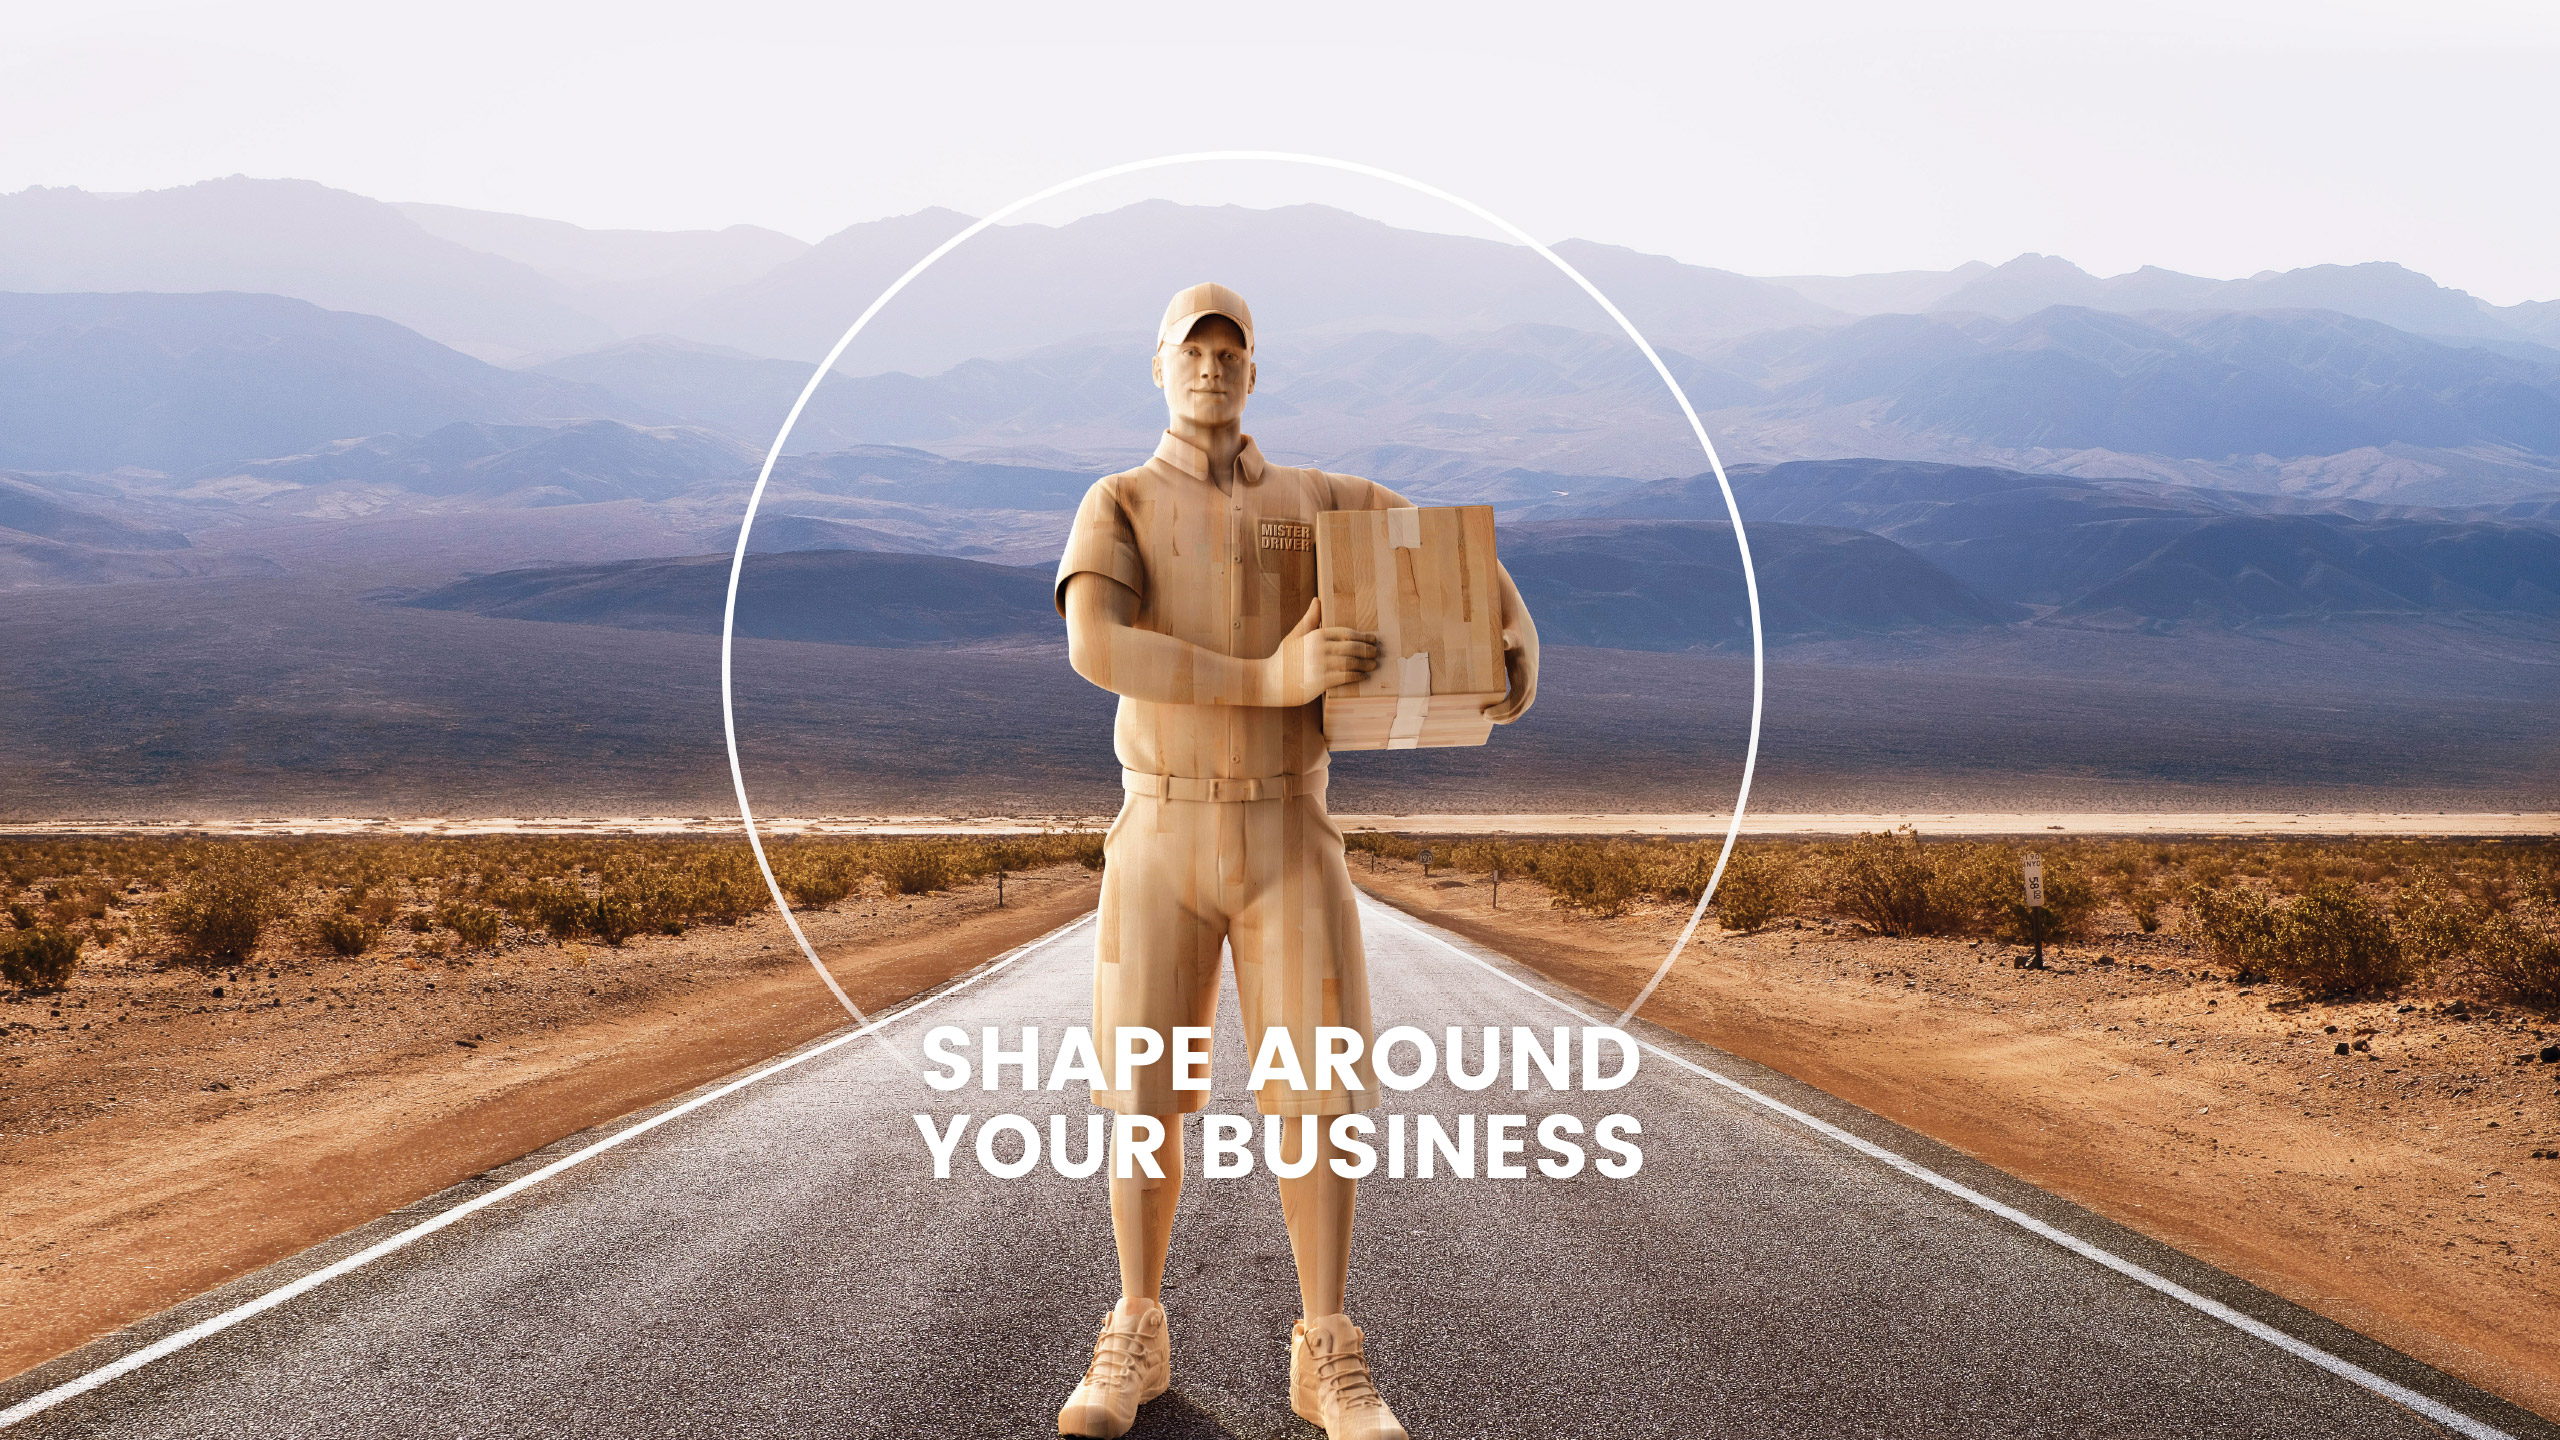 Bonhomme de bois shape around your business